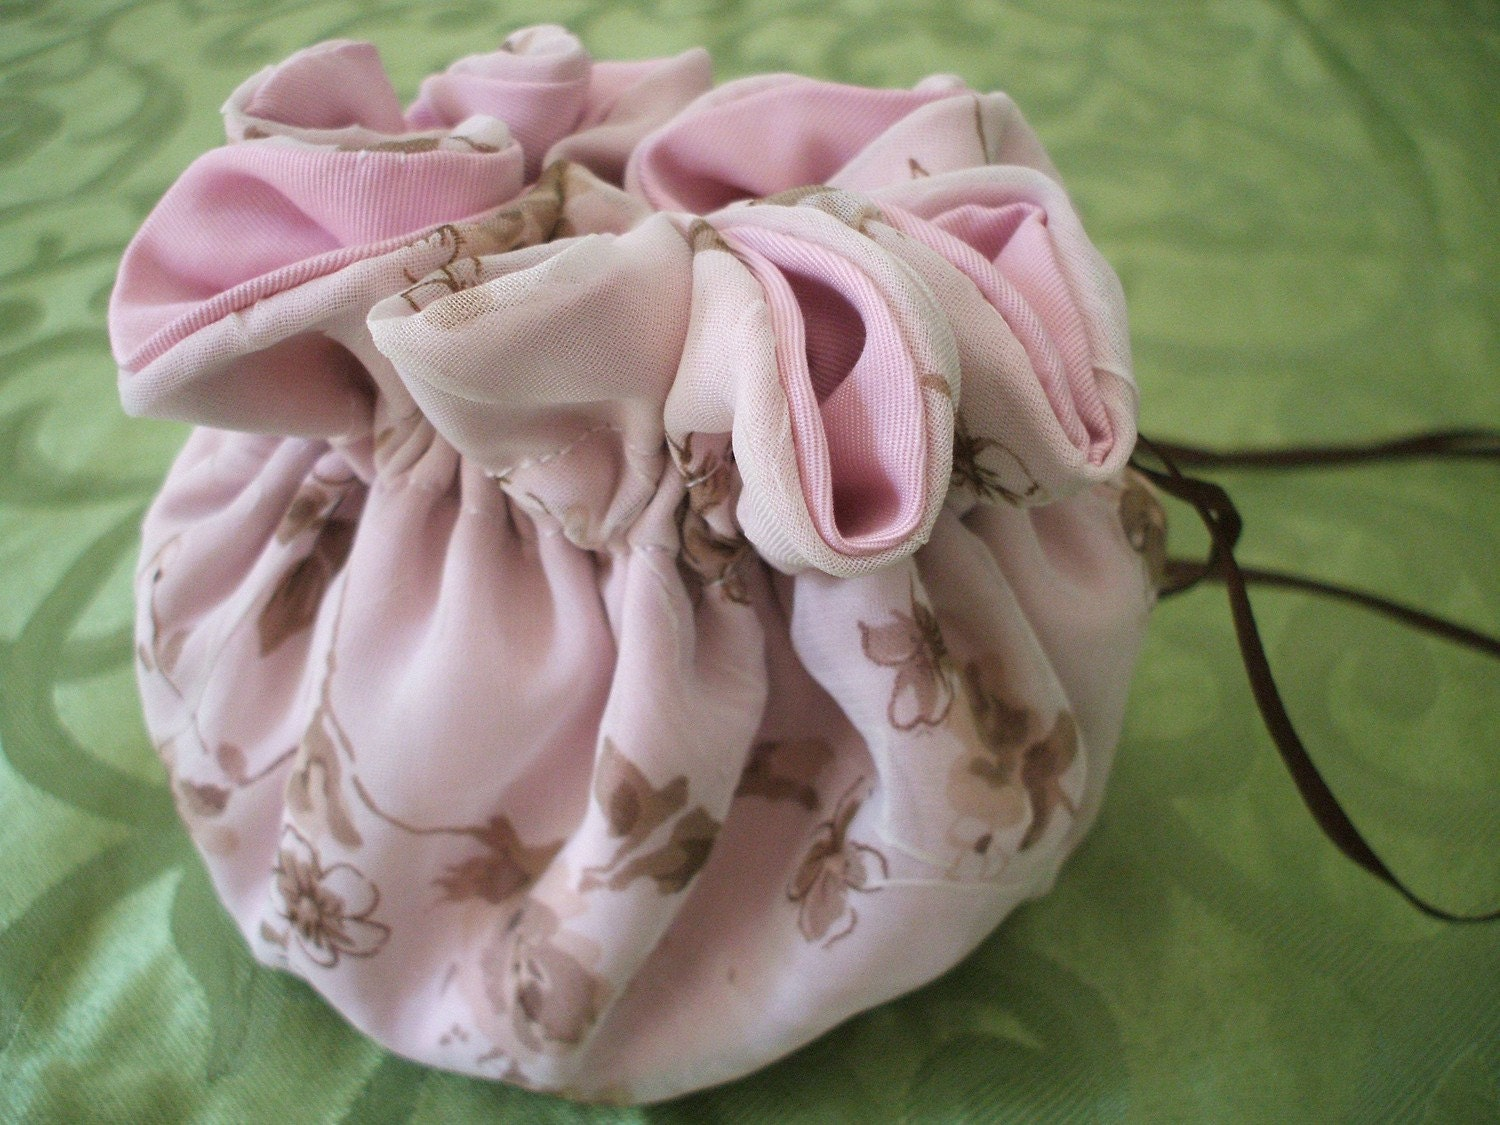 keepsake pouch for rosary chapel veil or memories in light pink